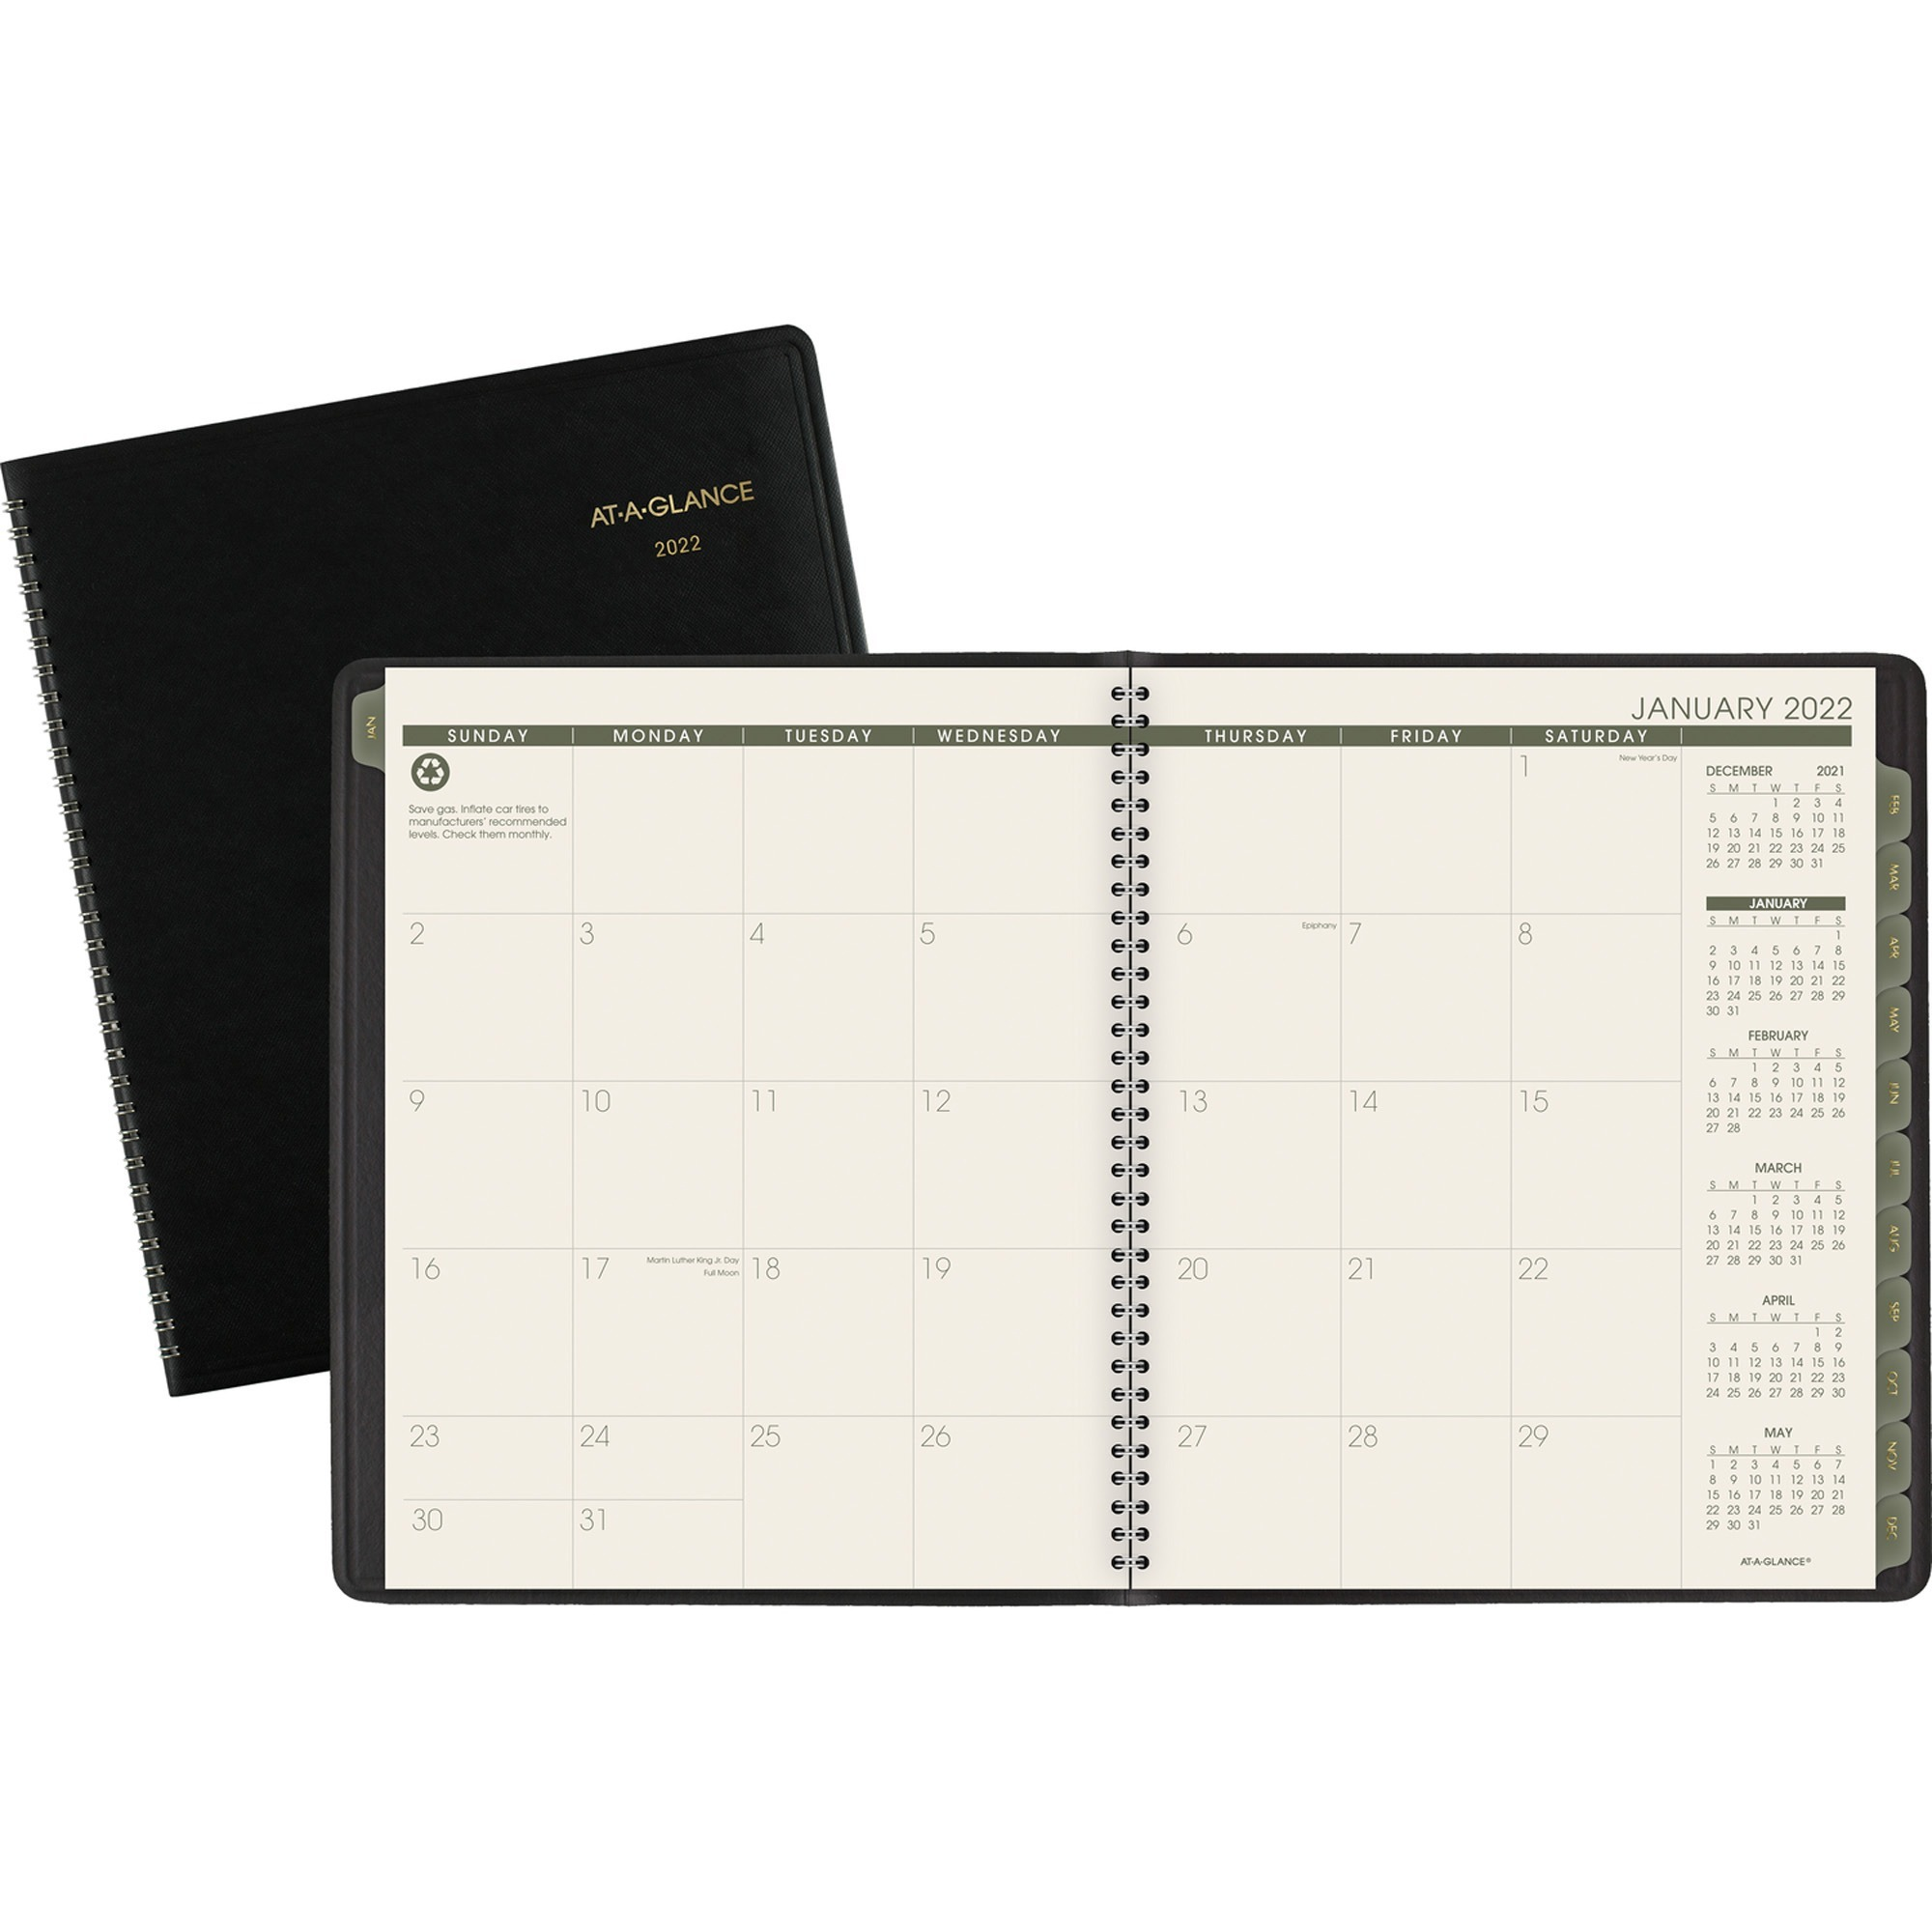 At-A-Glance 100% PCW Monthly Planner - Yes - Monthly - January 2020 till January 2021 - 9